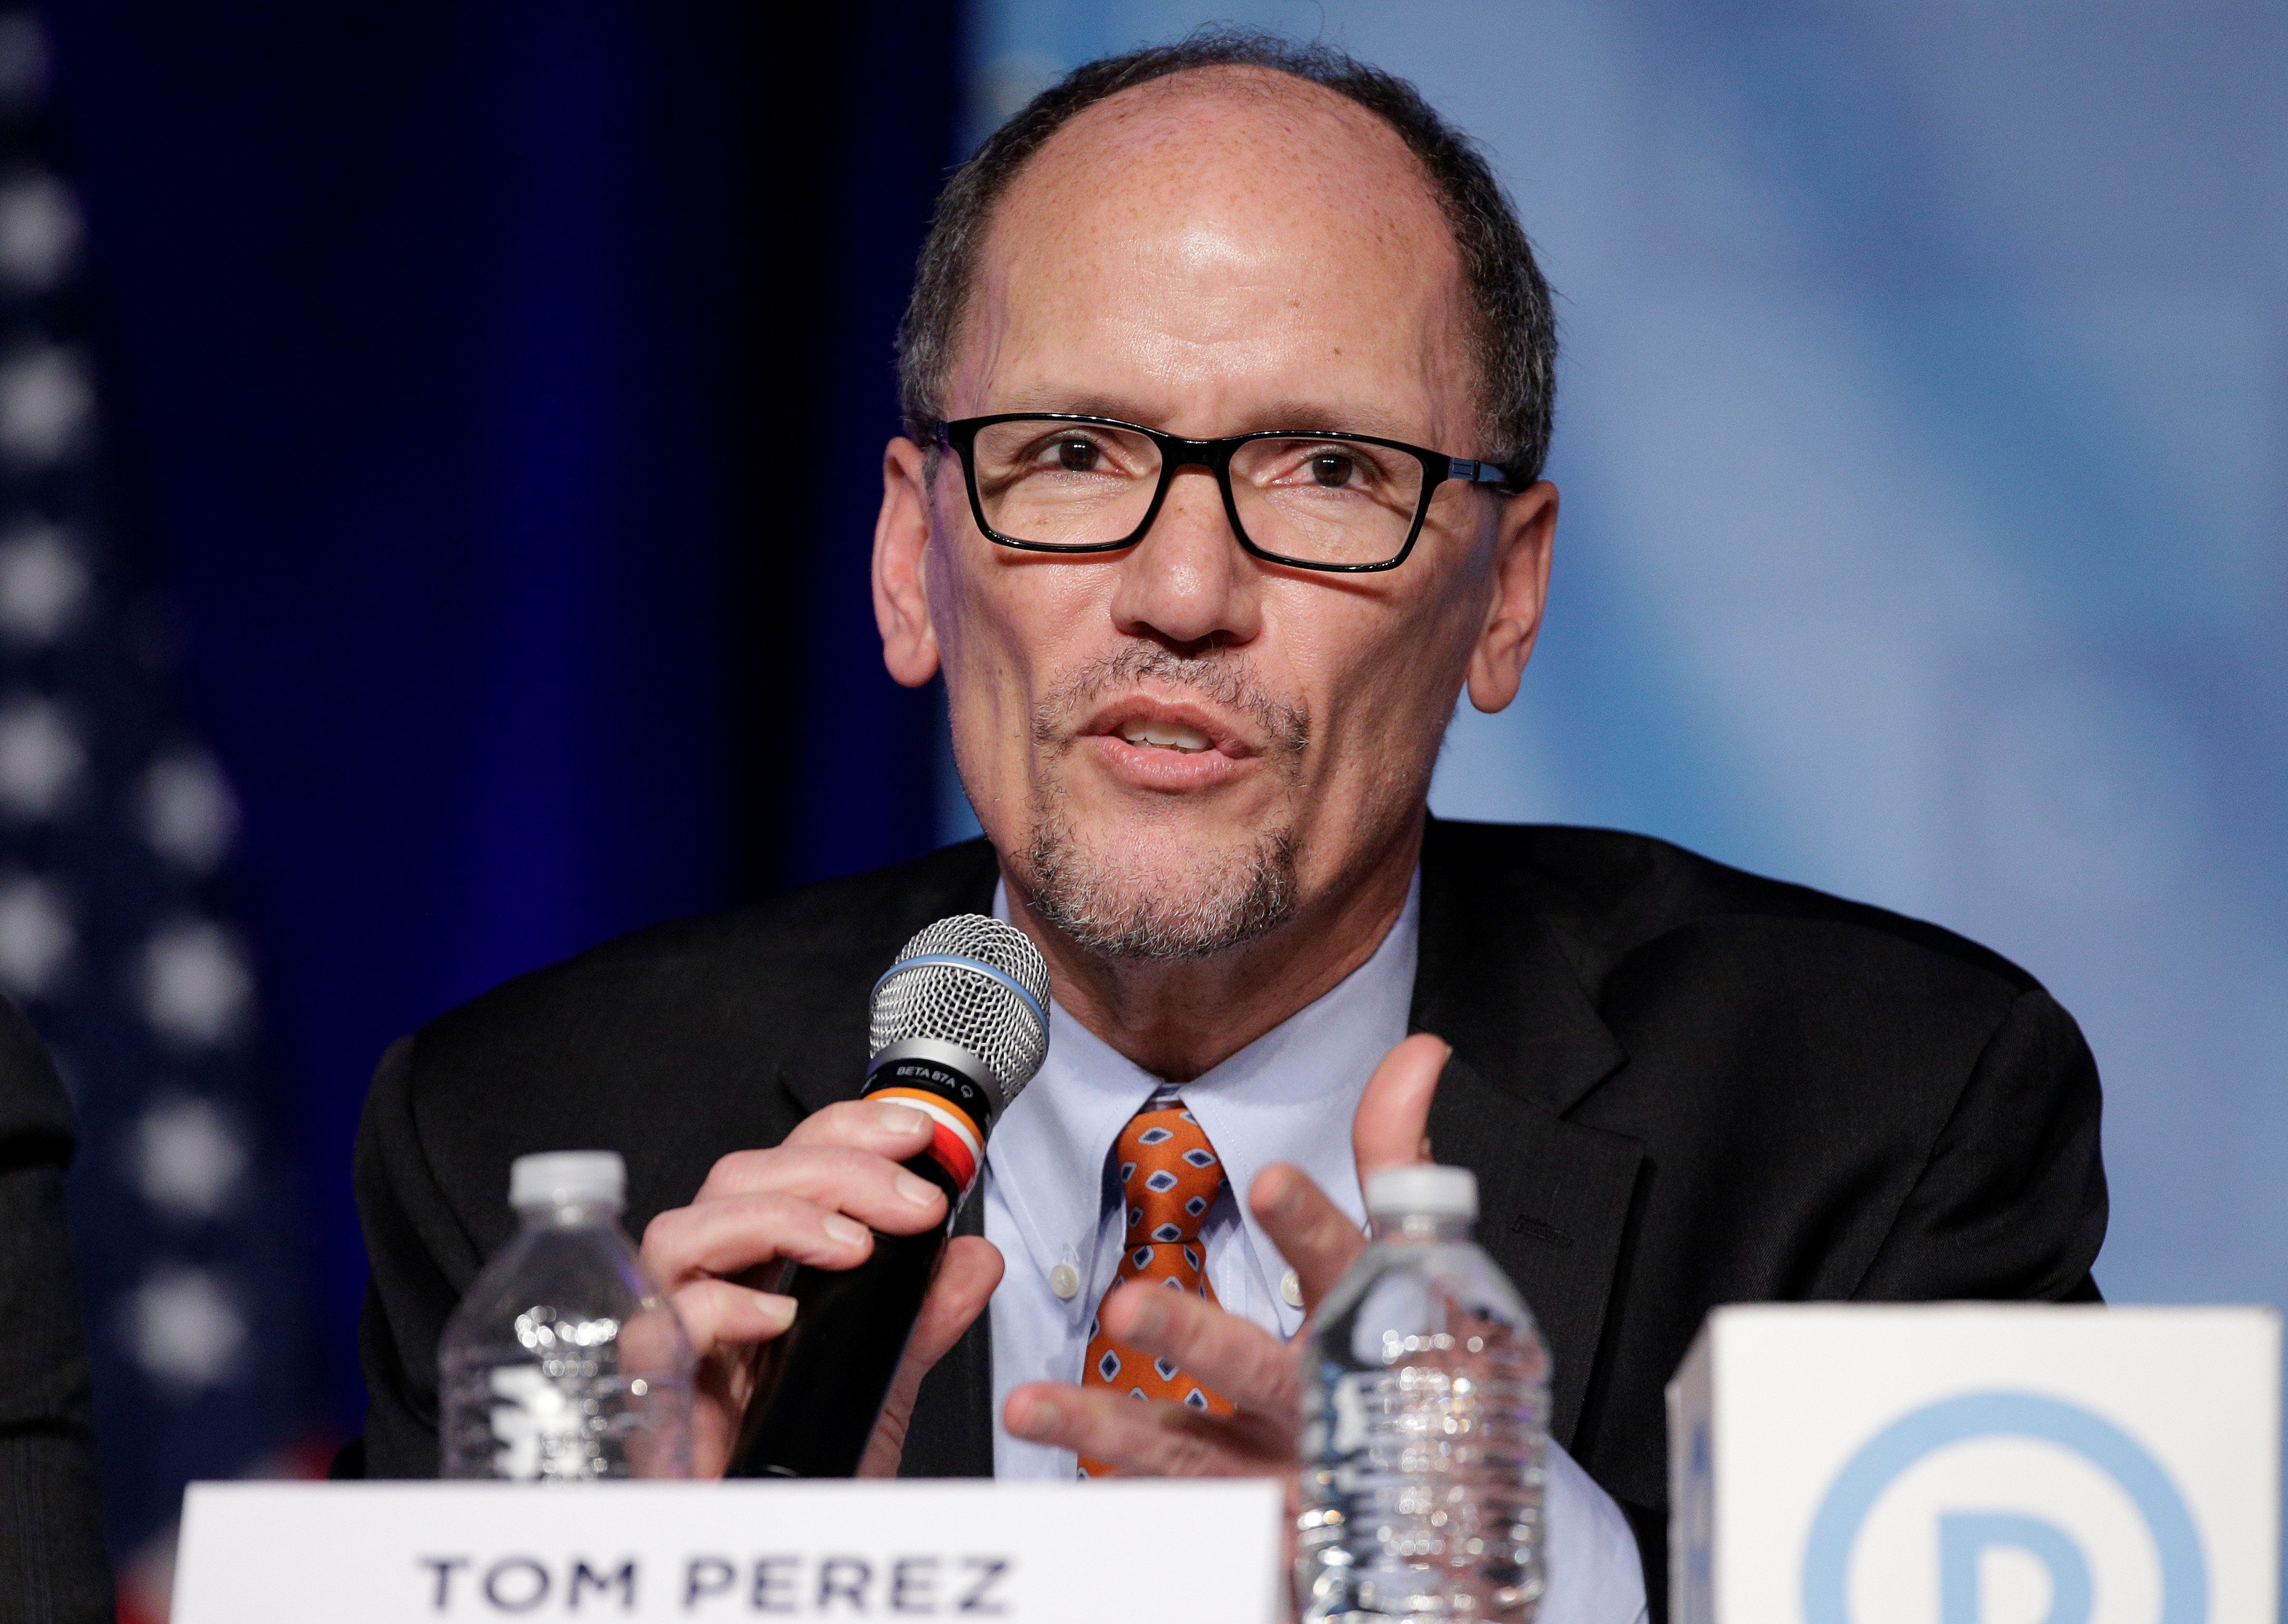 Tom Perez, the new chairman of the Democratic National Committee, has asked for resignation letters dated April 15.